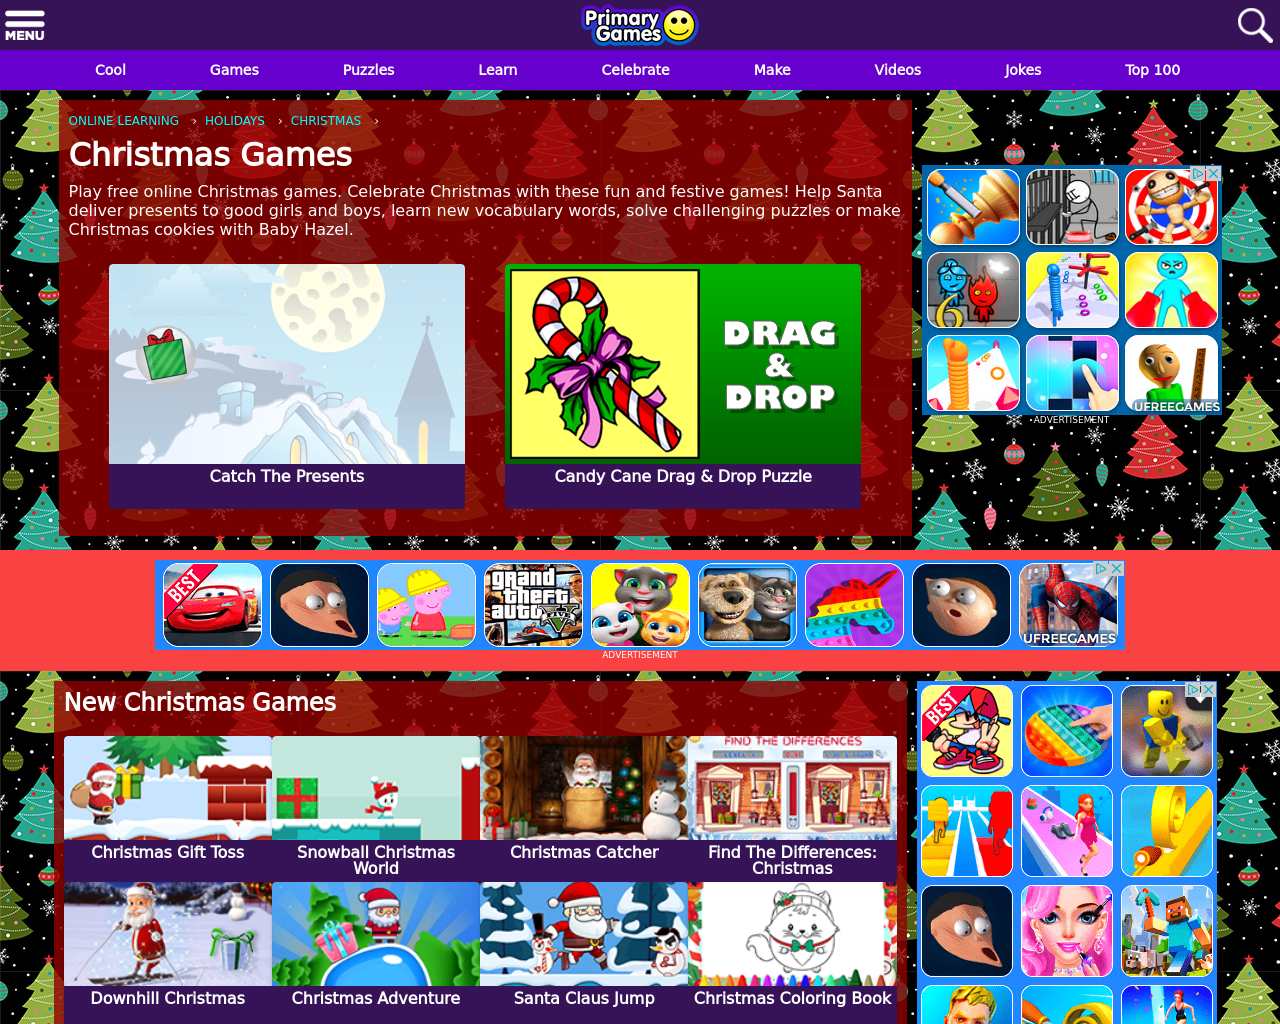 Christmas Games  (Primary Games)